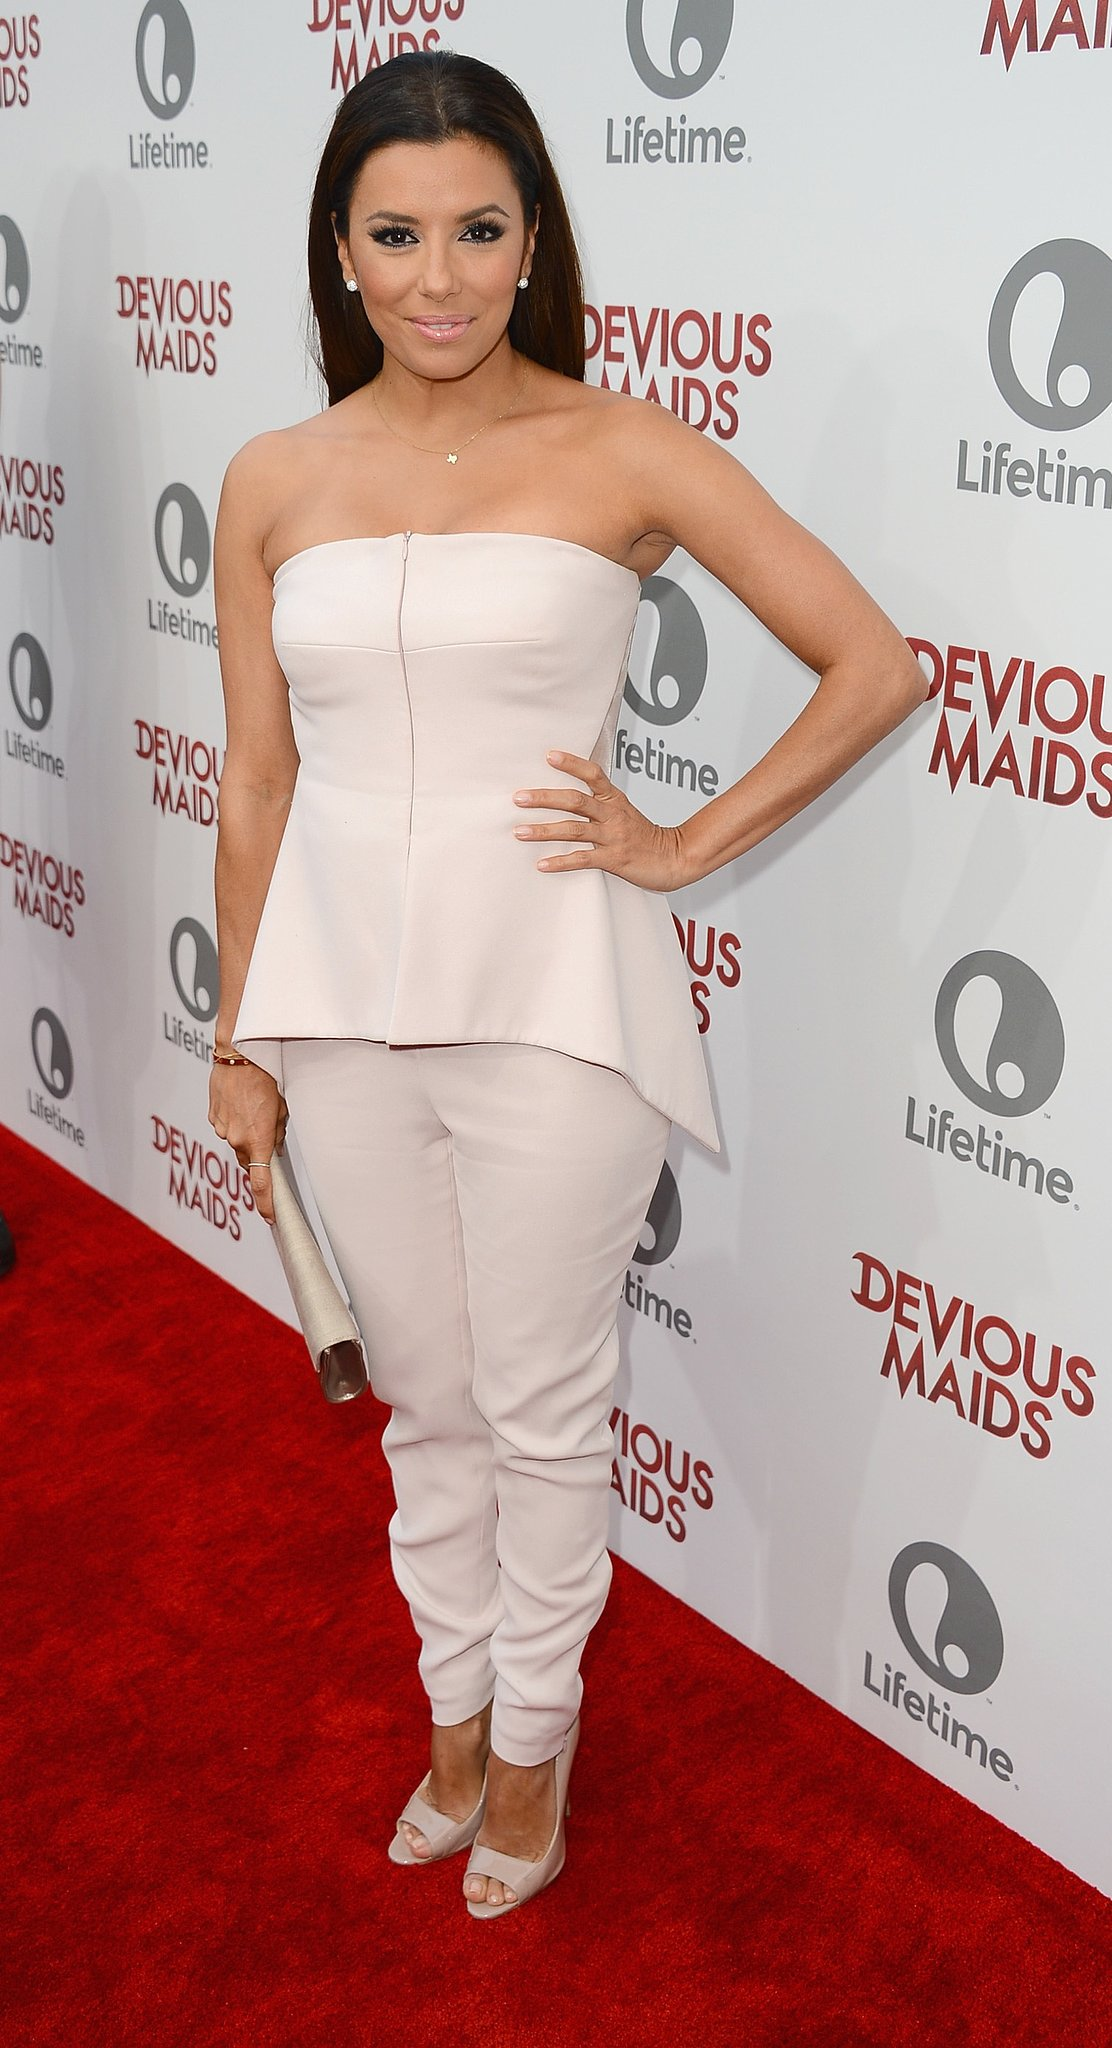 Eva Longoria opted to ditch a dress and instead donned a strapless top and matching trousers at the premiere of Devious Maids in Beverly Hills, CA.